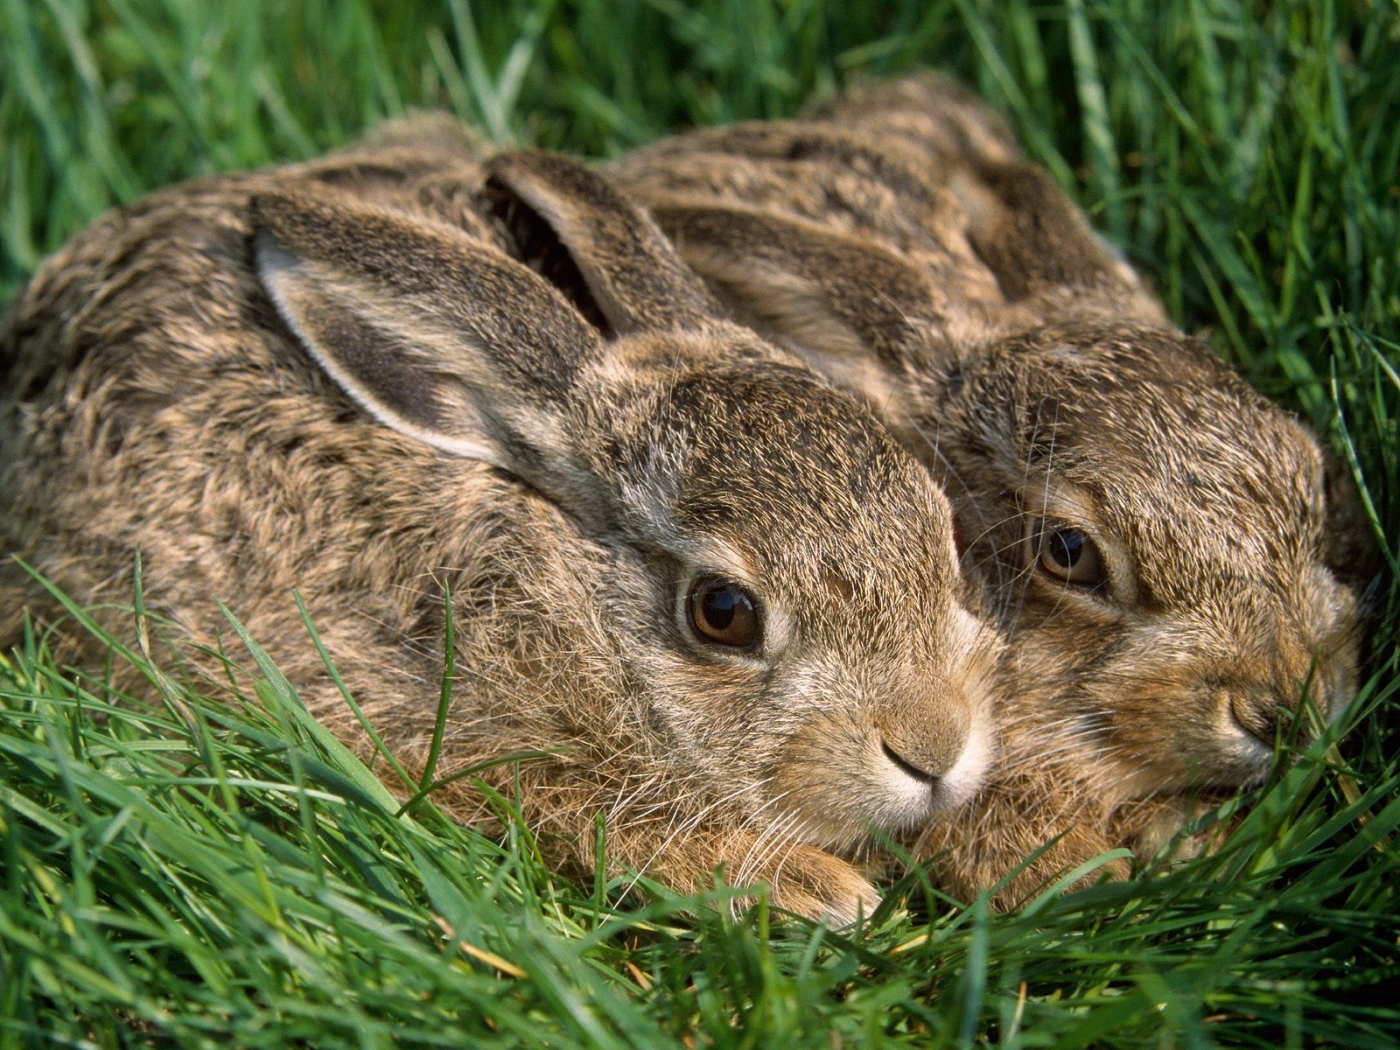 35671 download wallpaper Animals, Rabbits screensavers and pictures for free